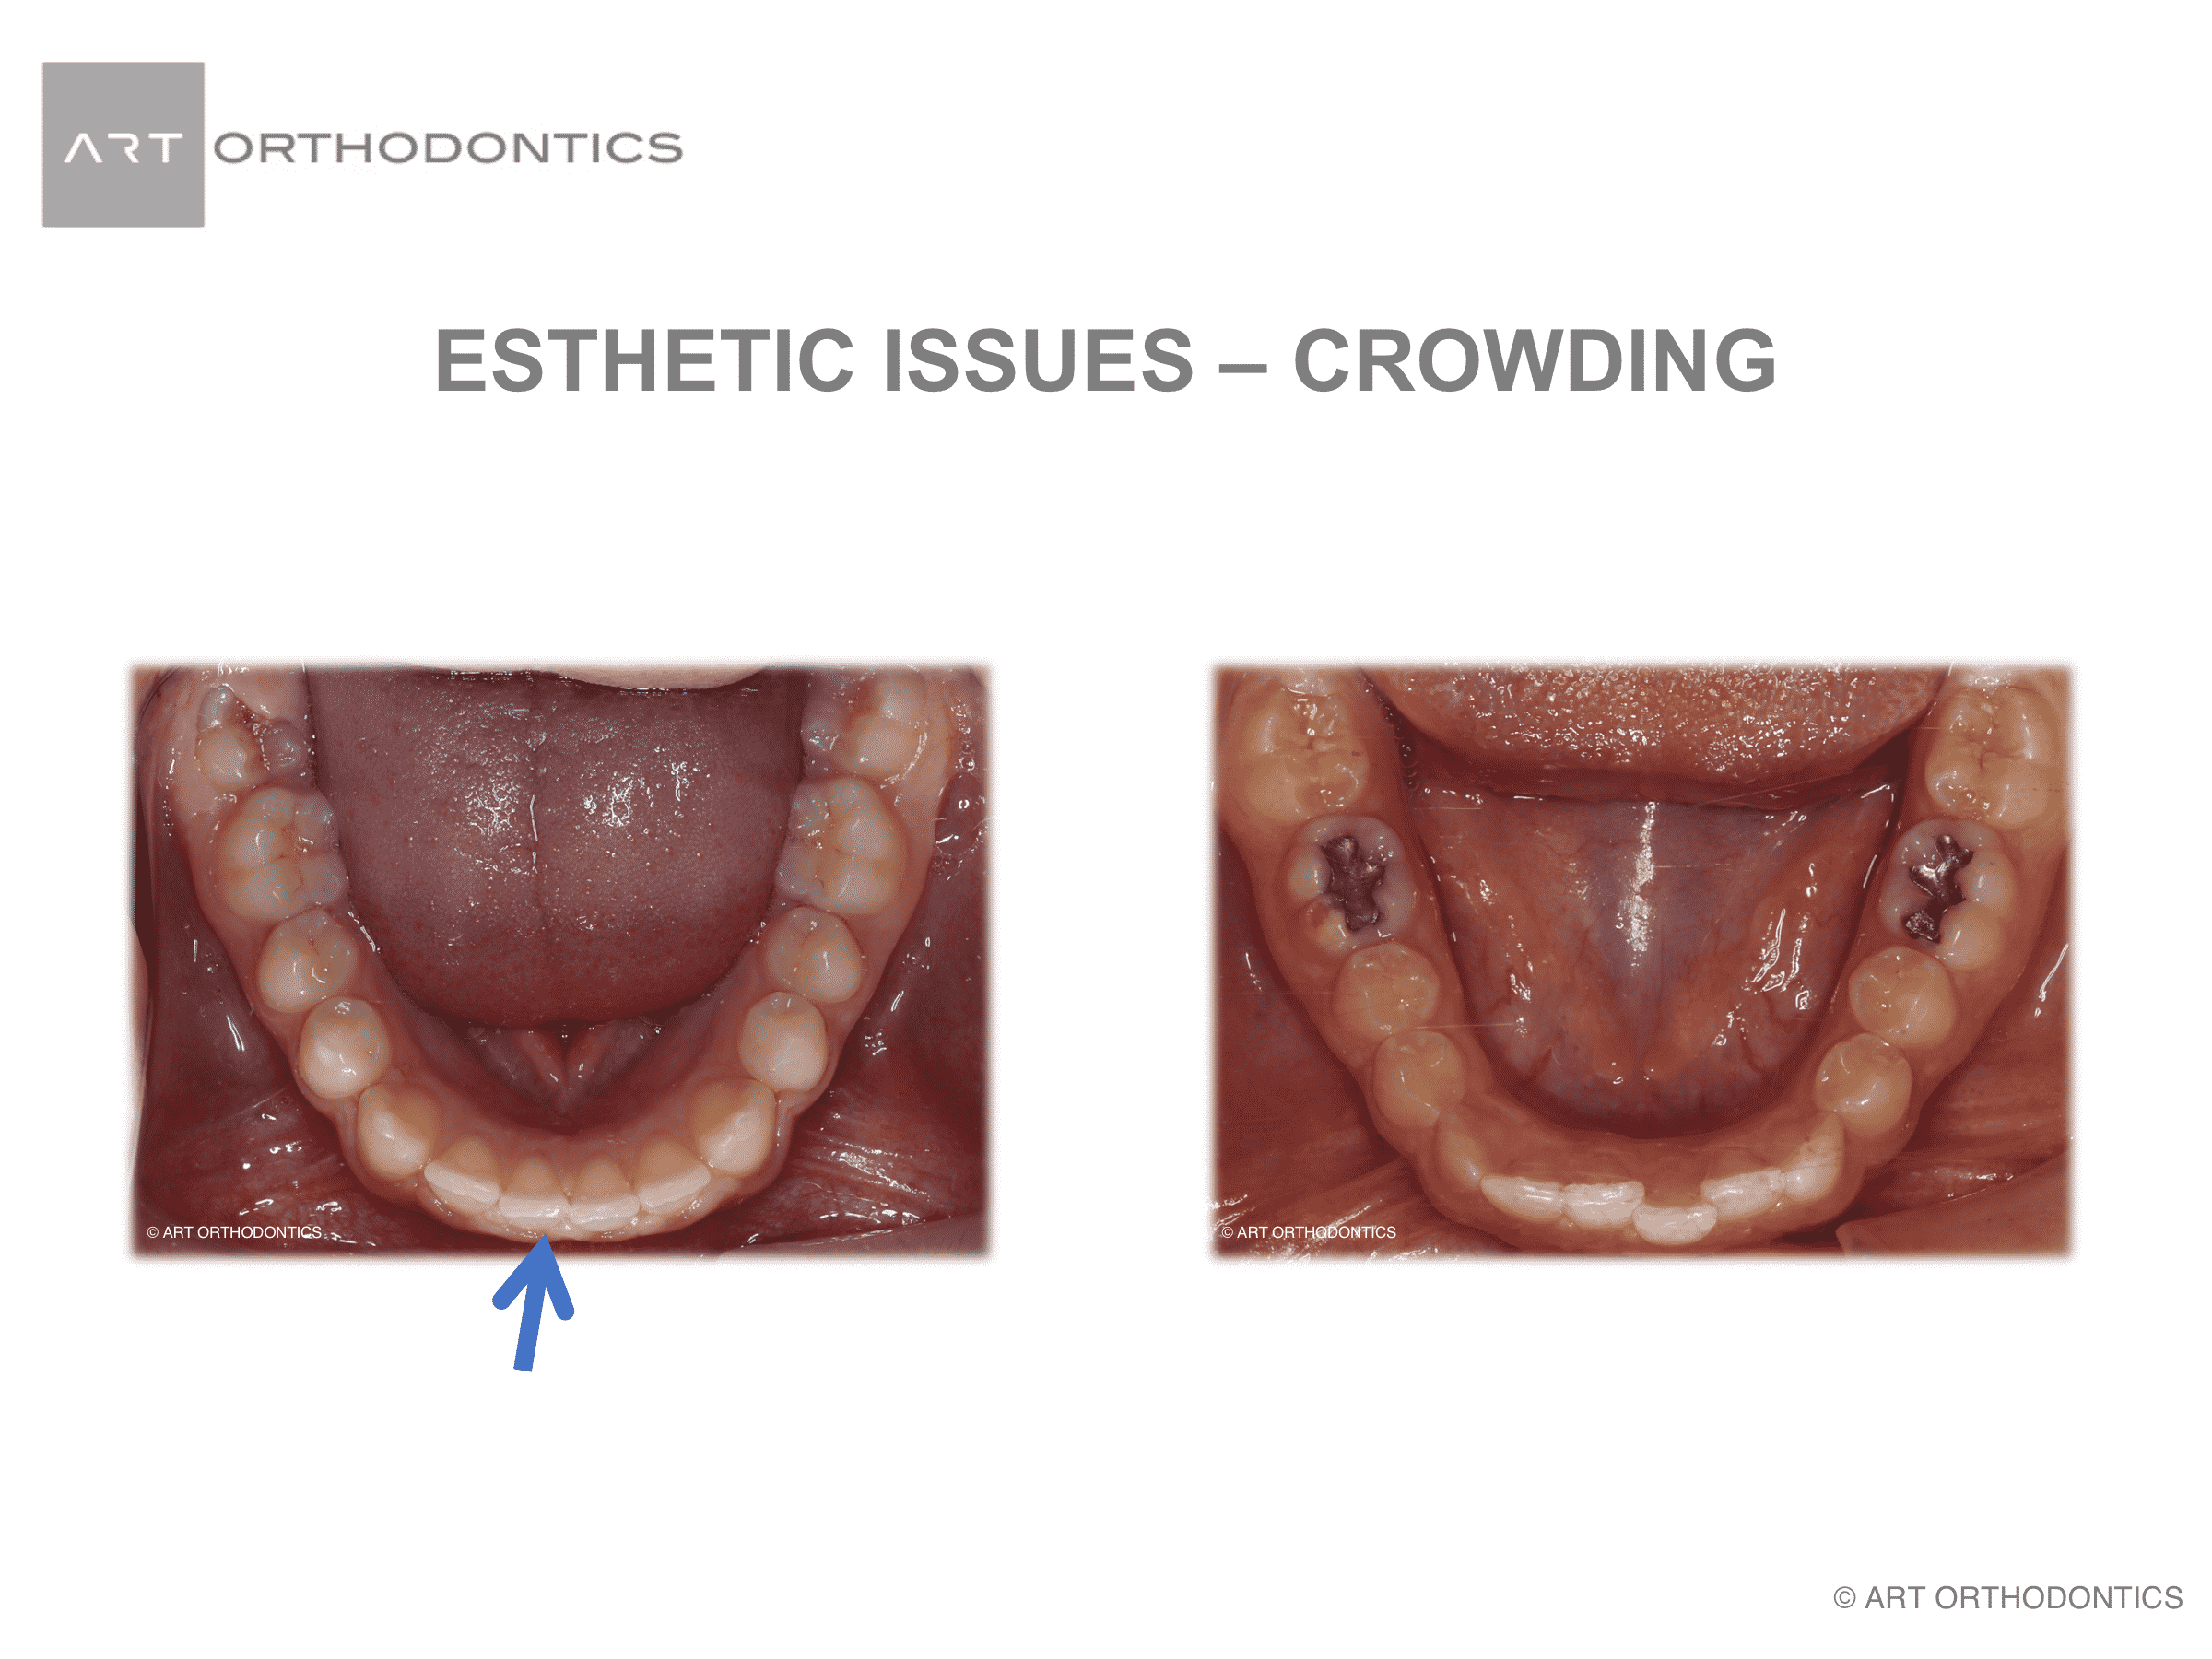 Lower anterior crowding that is mild